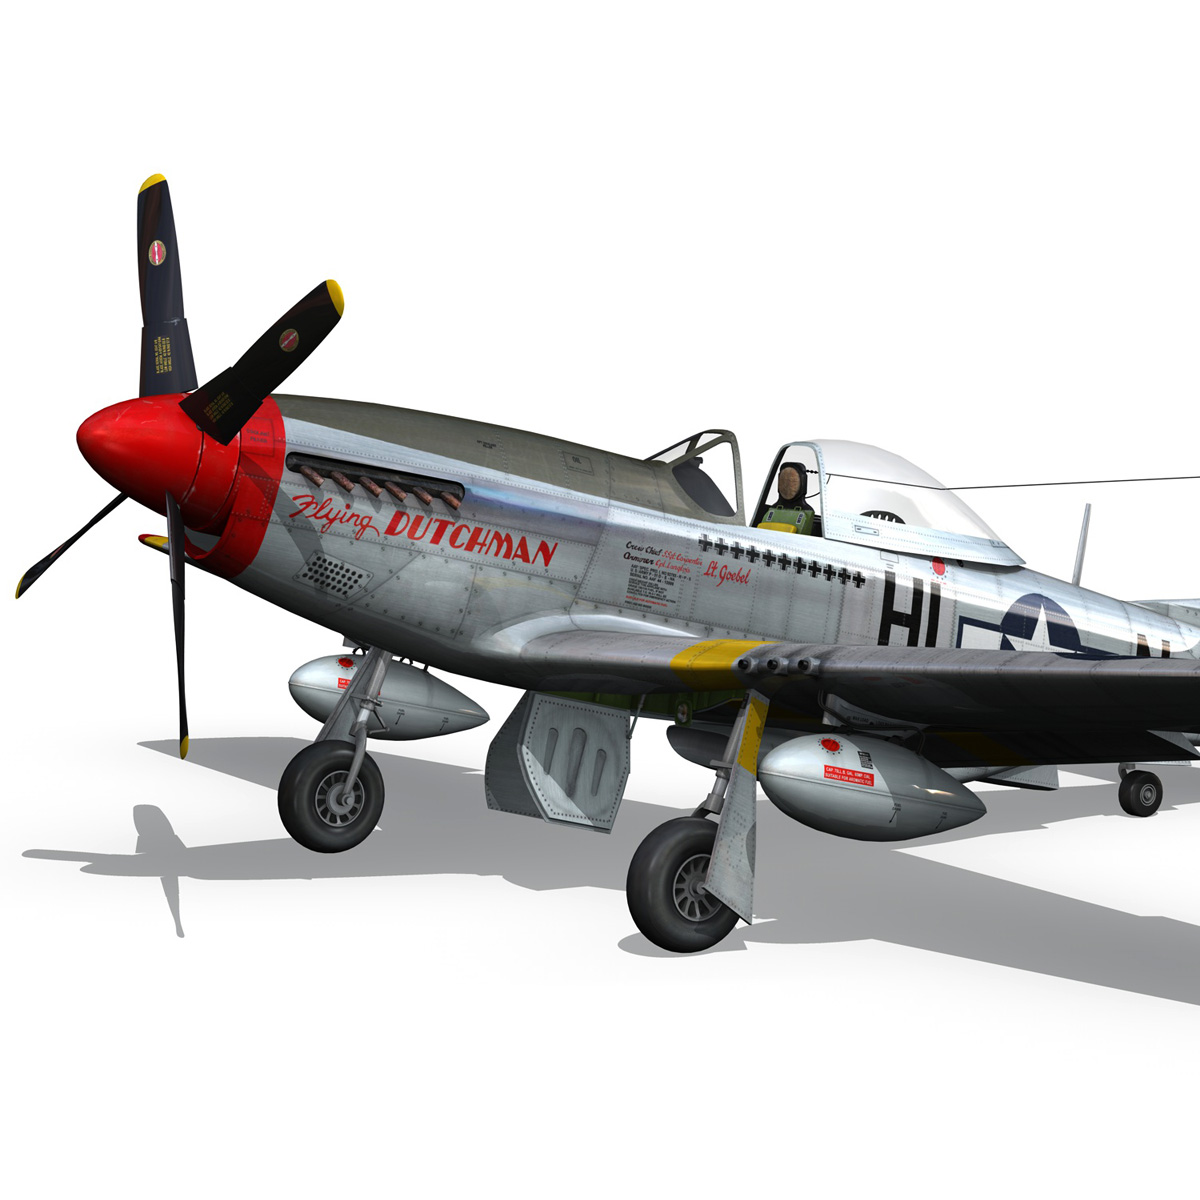 north american p-51d – flying dutchman 3d model fbx lwo lw lws obj c4d 267124